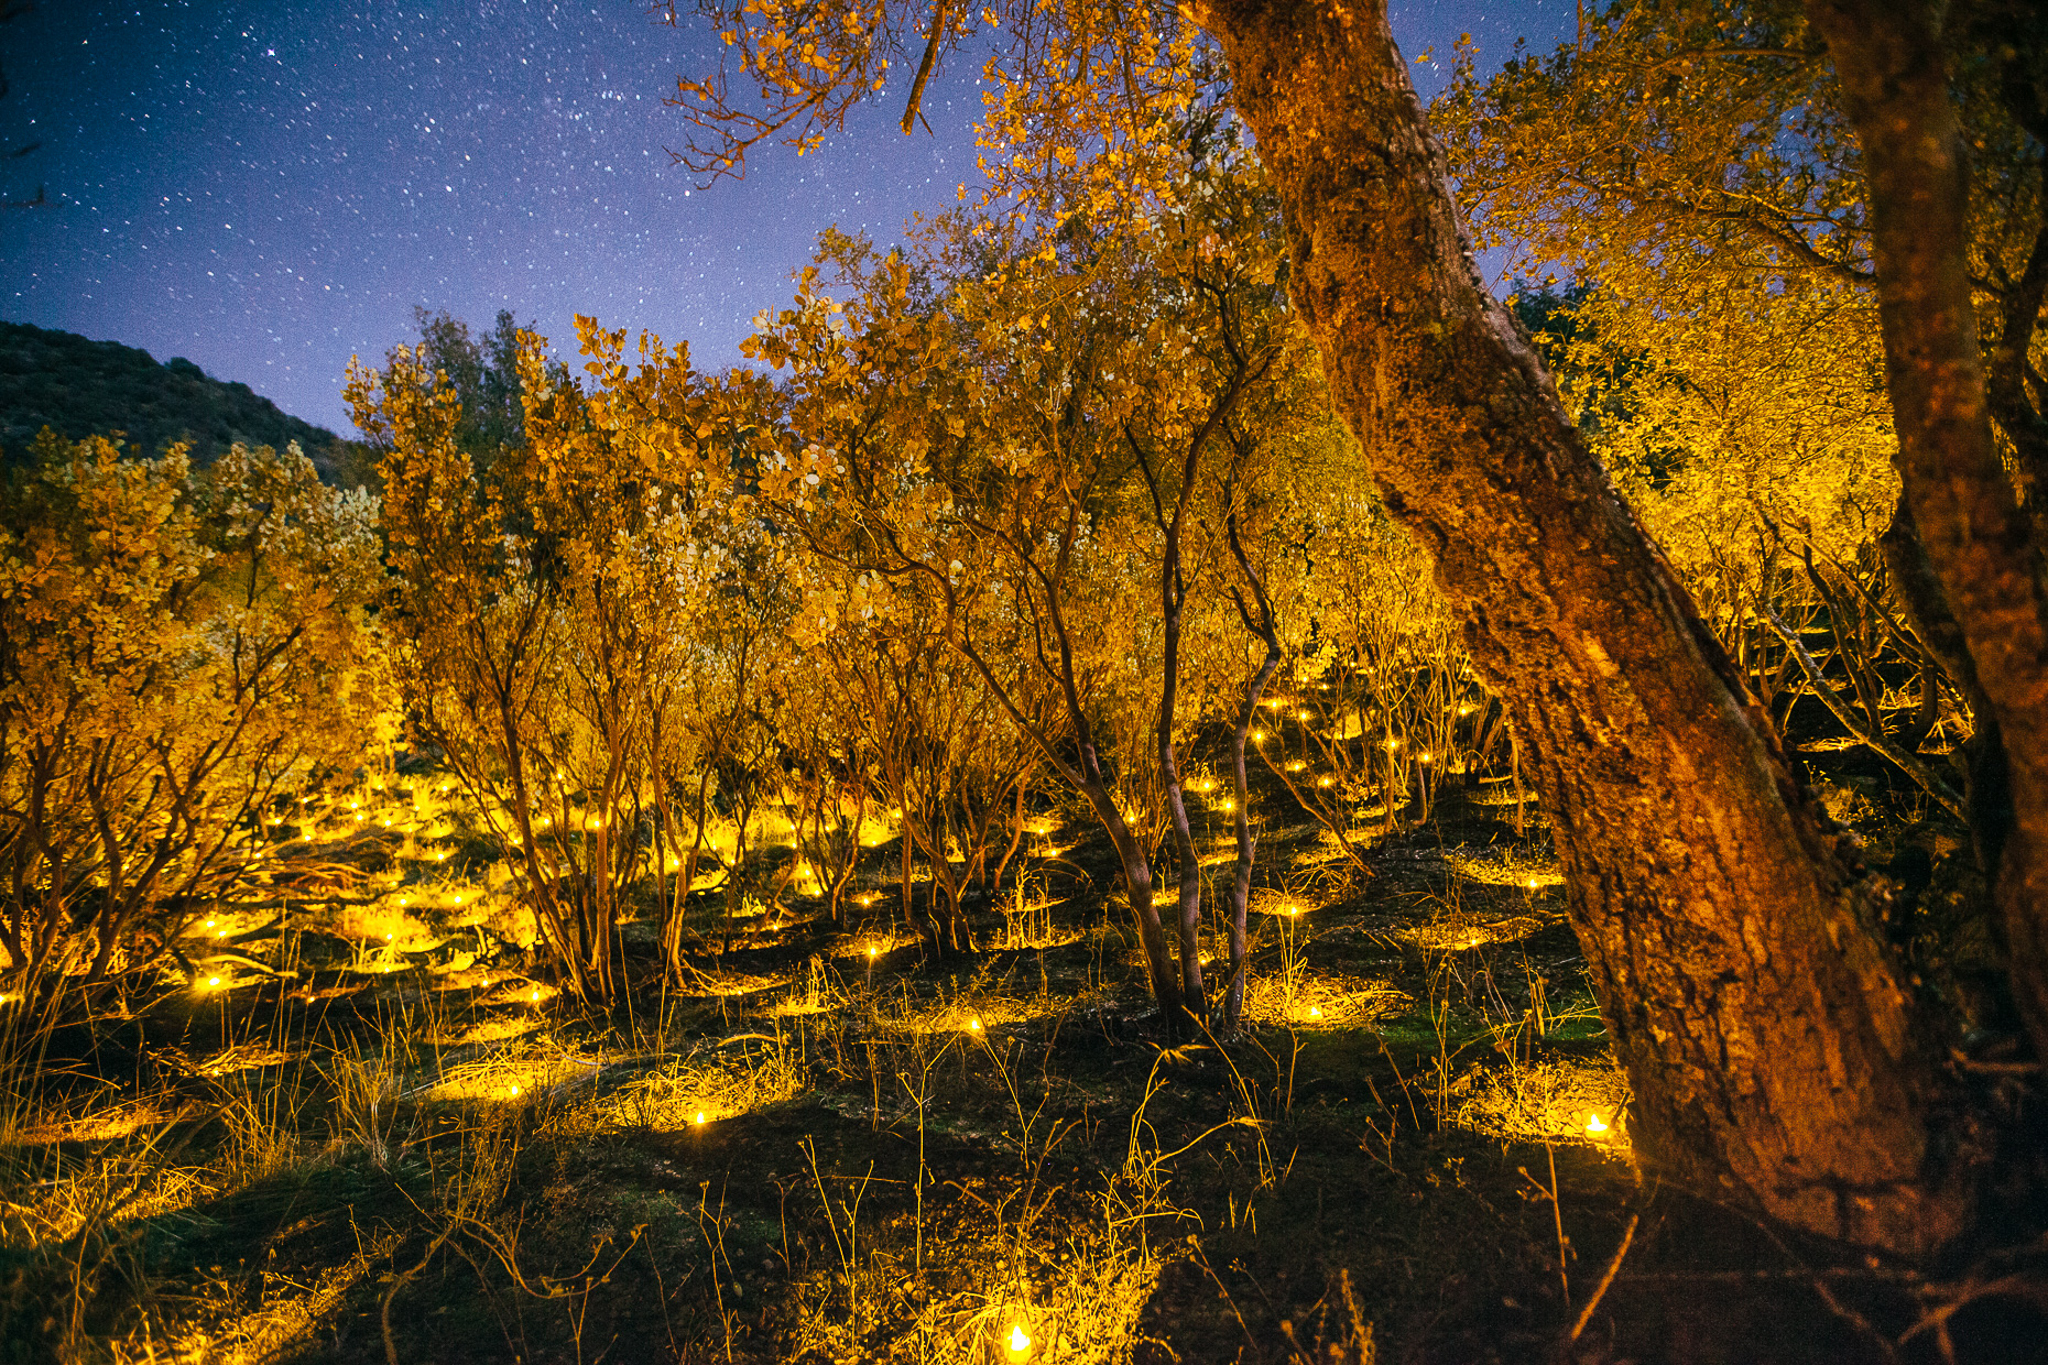 Electric tea lights illuminate the placement of plants in a marijuana grow in Sierra National Forest.